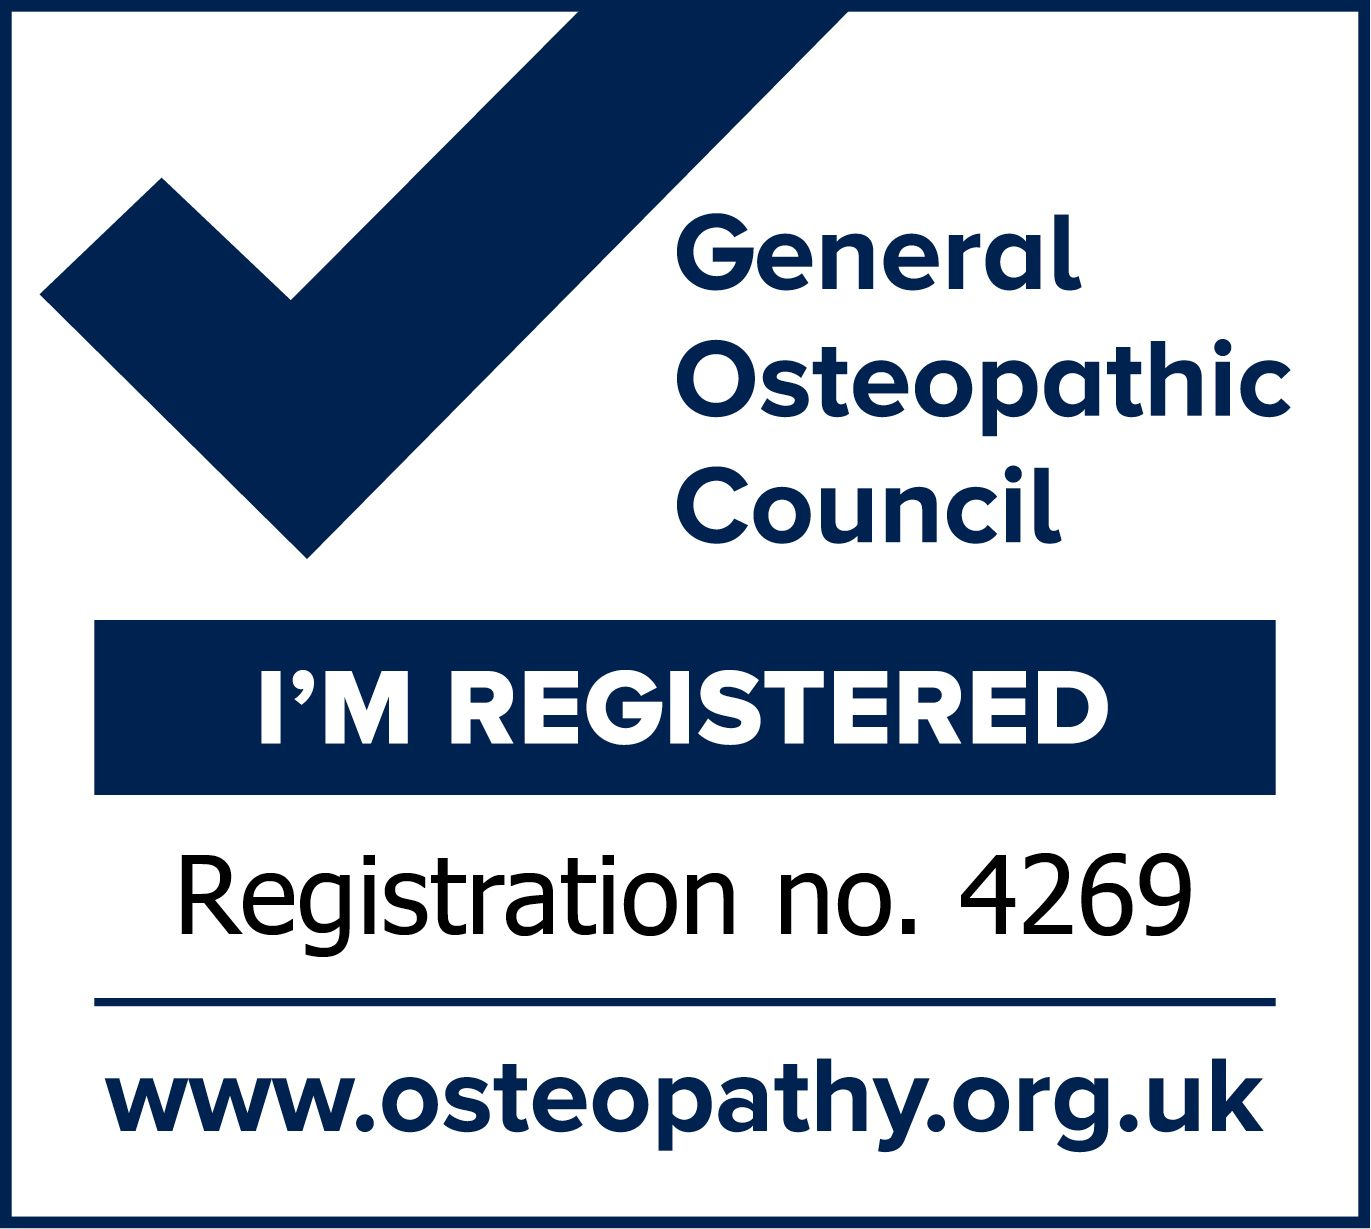 Darren Chandler is a registered member of the General Osteopathic Council